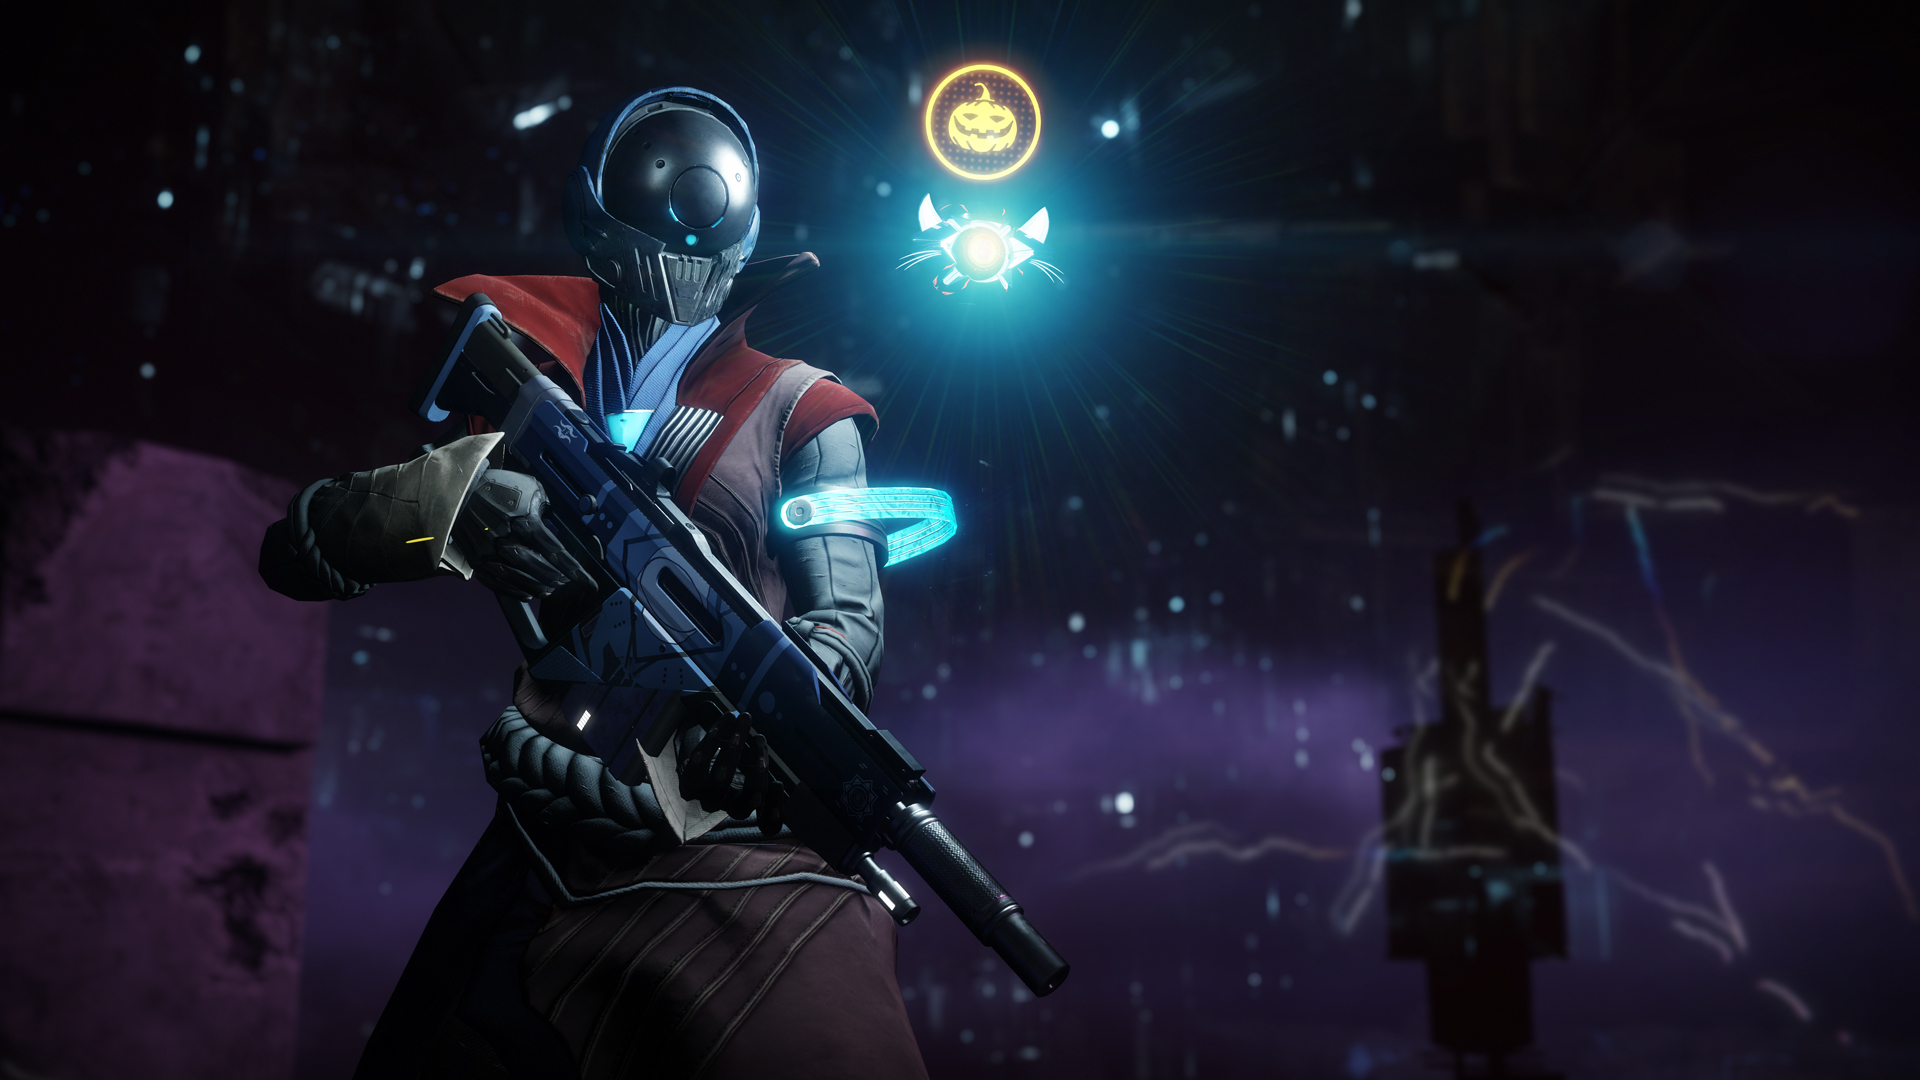 Destiny 2: Festival of the Lost - here's all the gear, masks